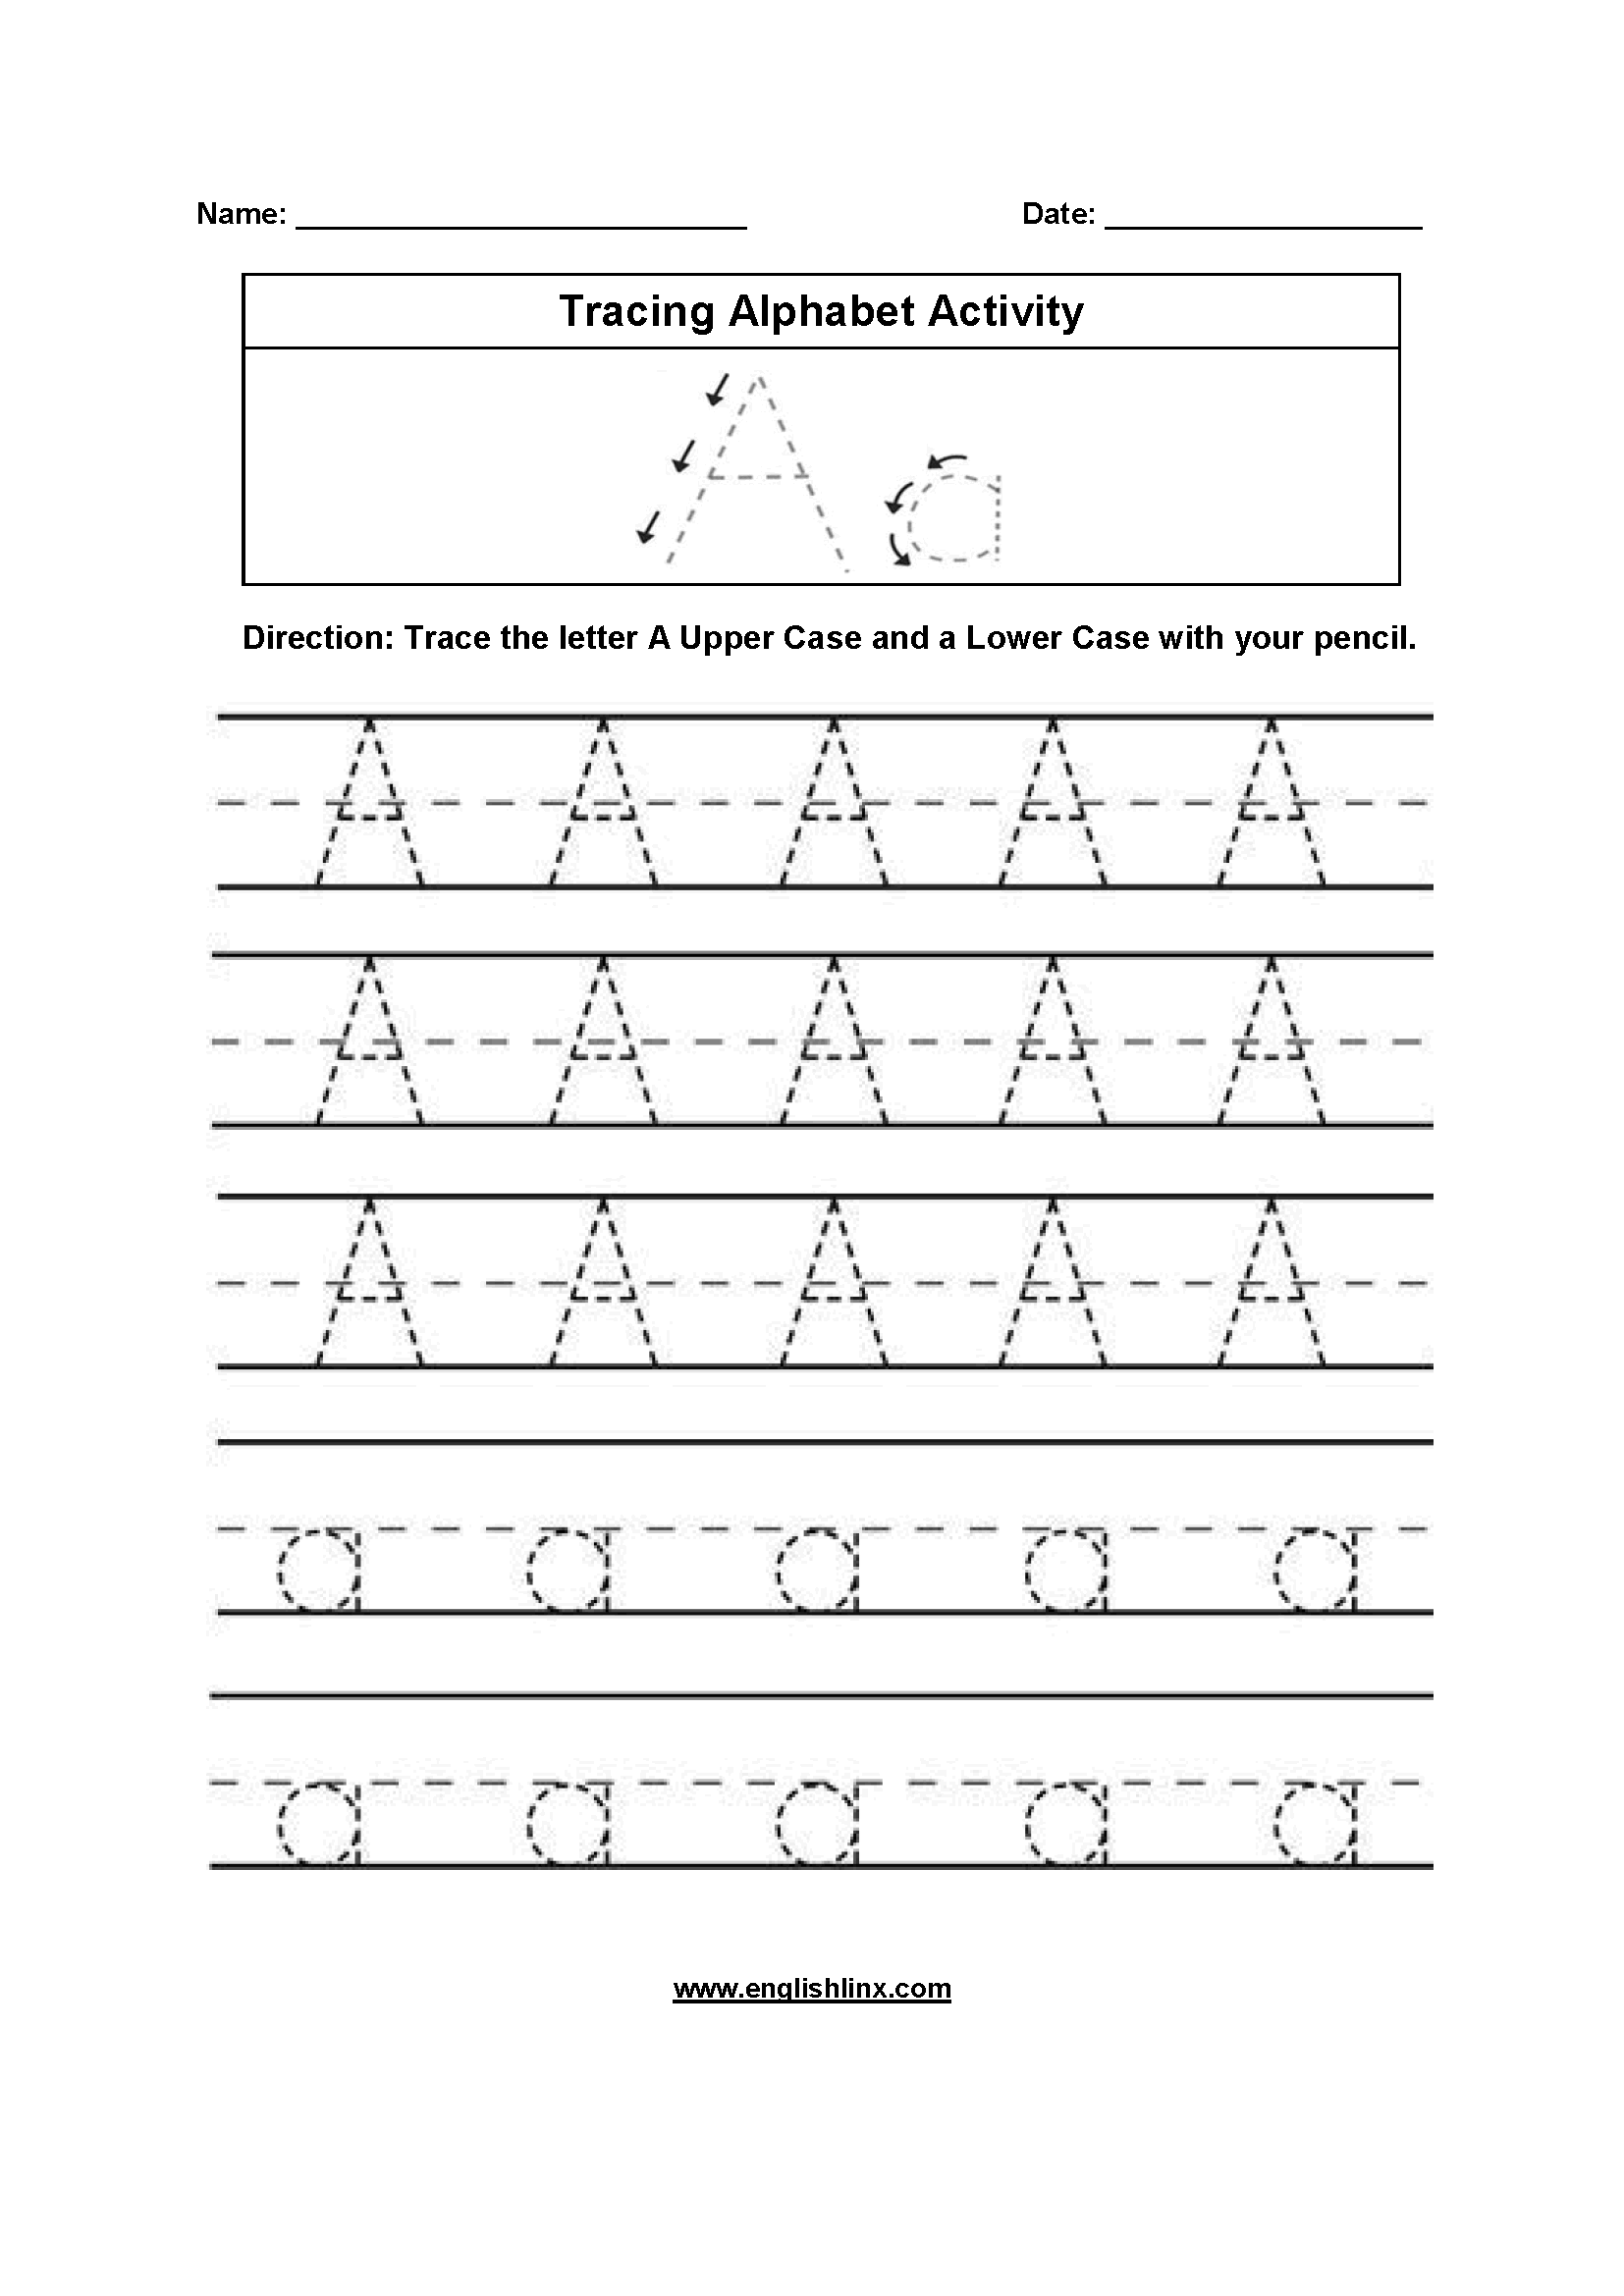 Worksheet ~ Alphabet Worksheets Printable Free Pdf With pertaining to Alphabet Worksheets Pdf Download